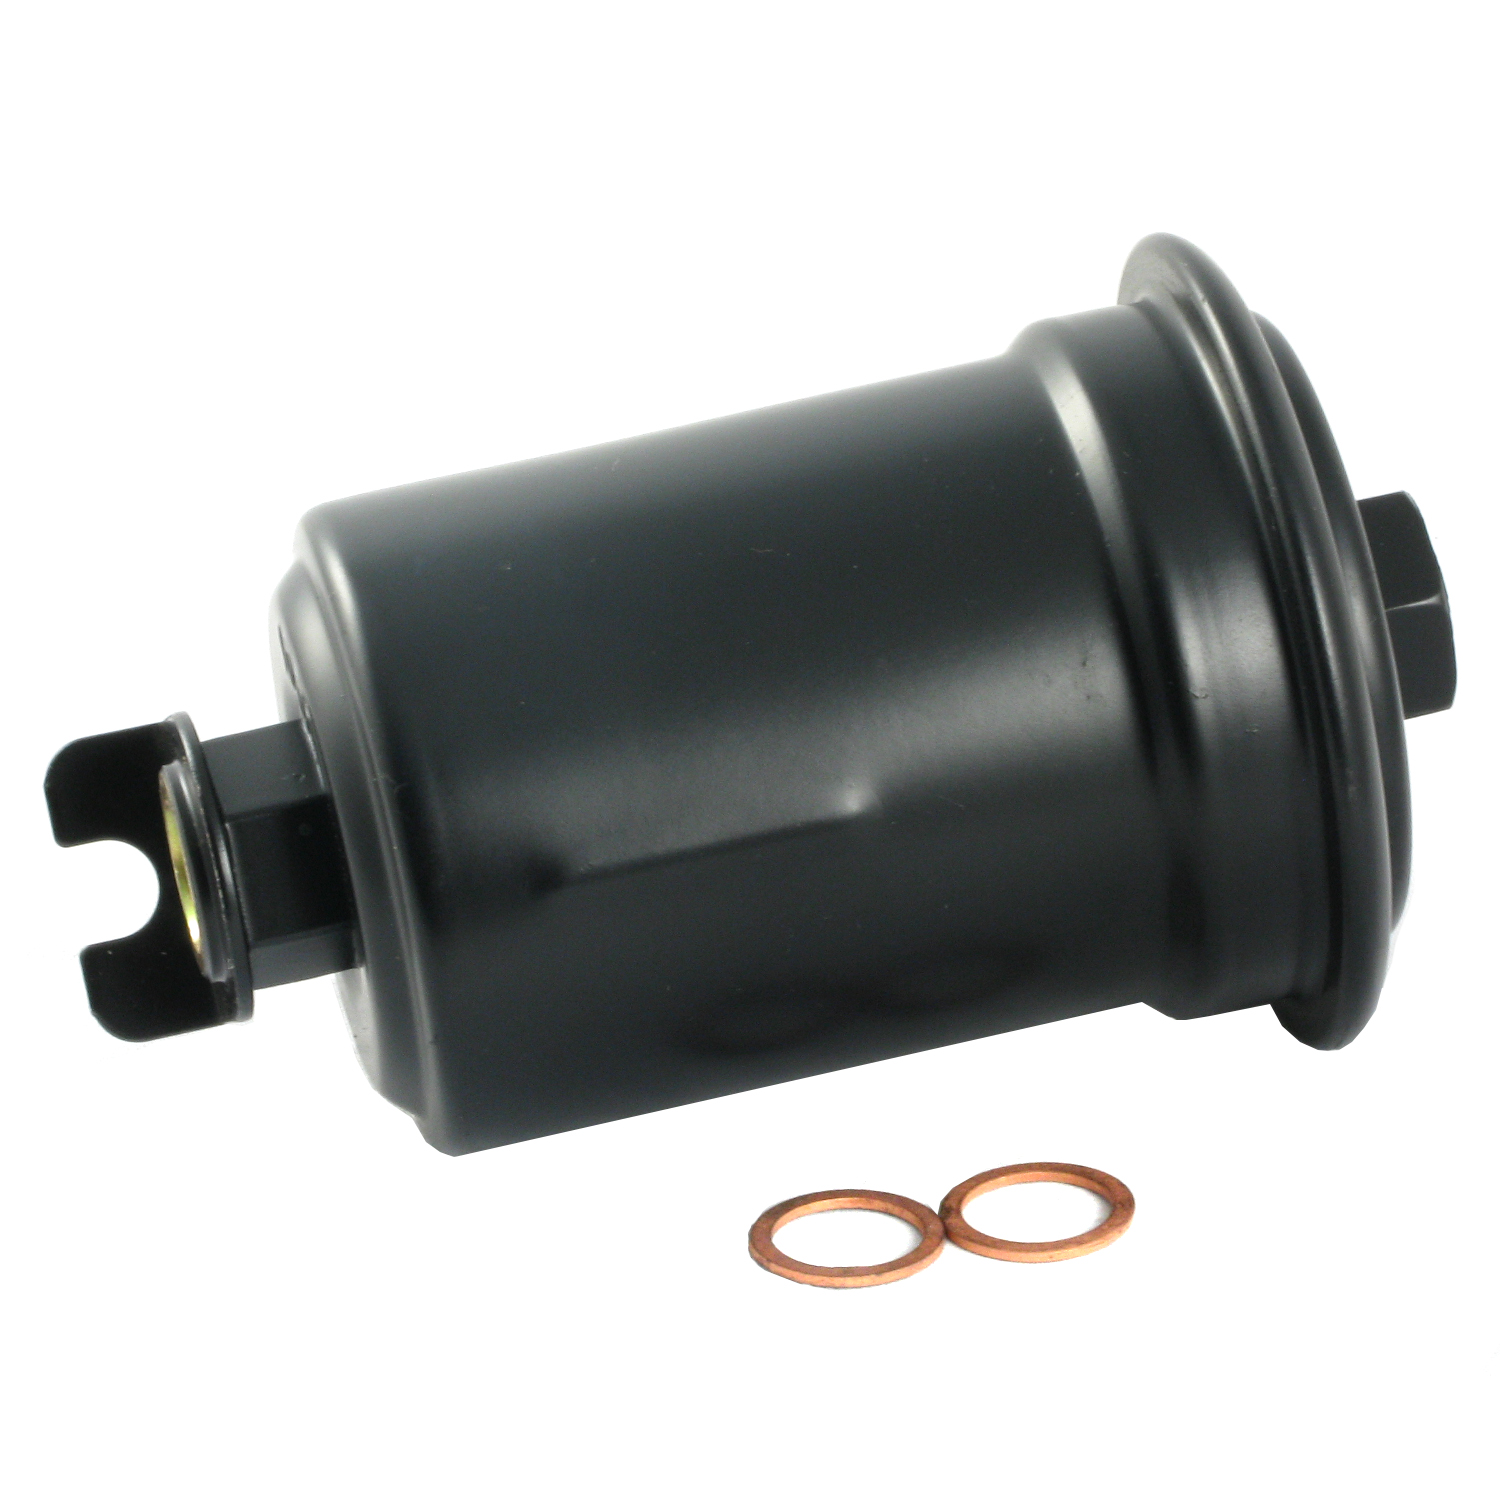 2004 Toyota Camry Fuel Filter Location 2000 E8 Xf45068